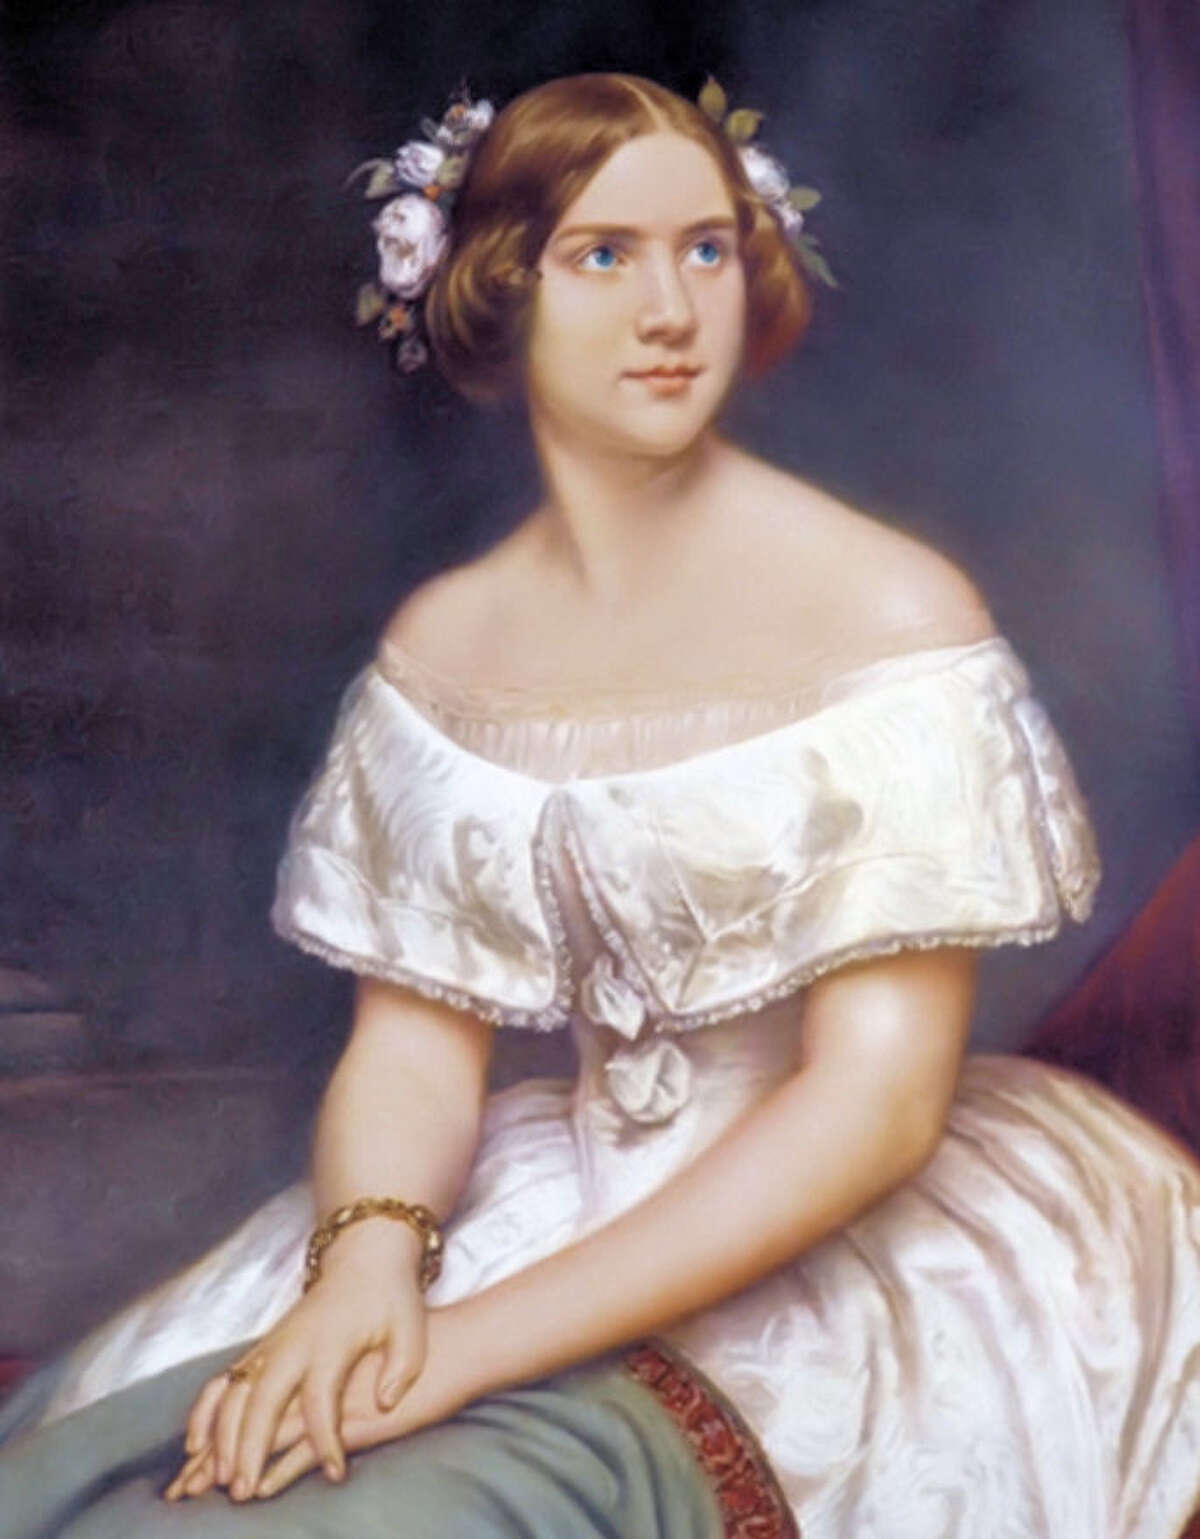 The lovely Swedish Jenny Lind who took America by storm in 1850. Painting courtesy of Bridgeport's Barnum Museum.